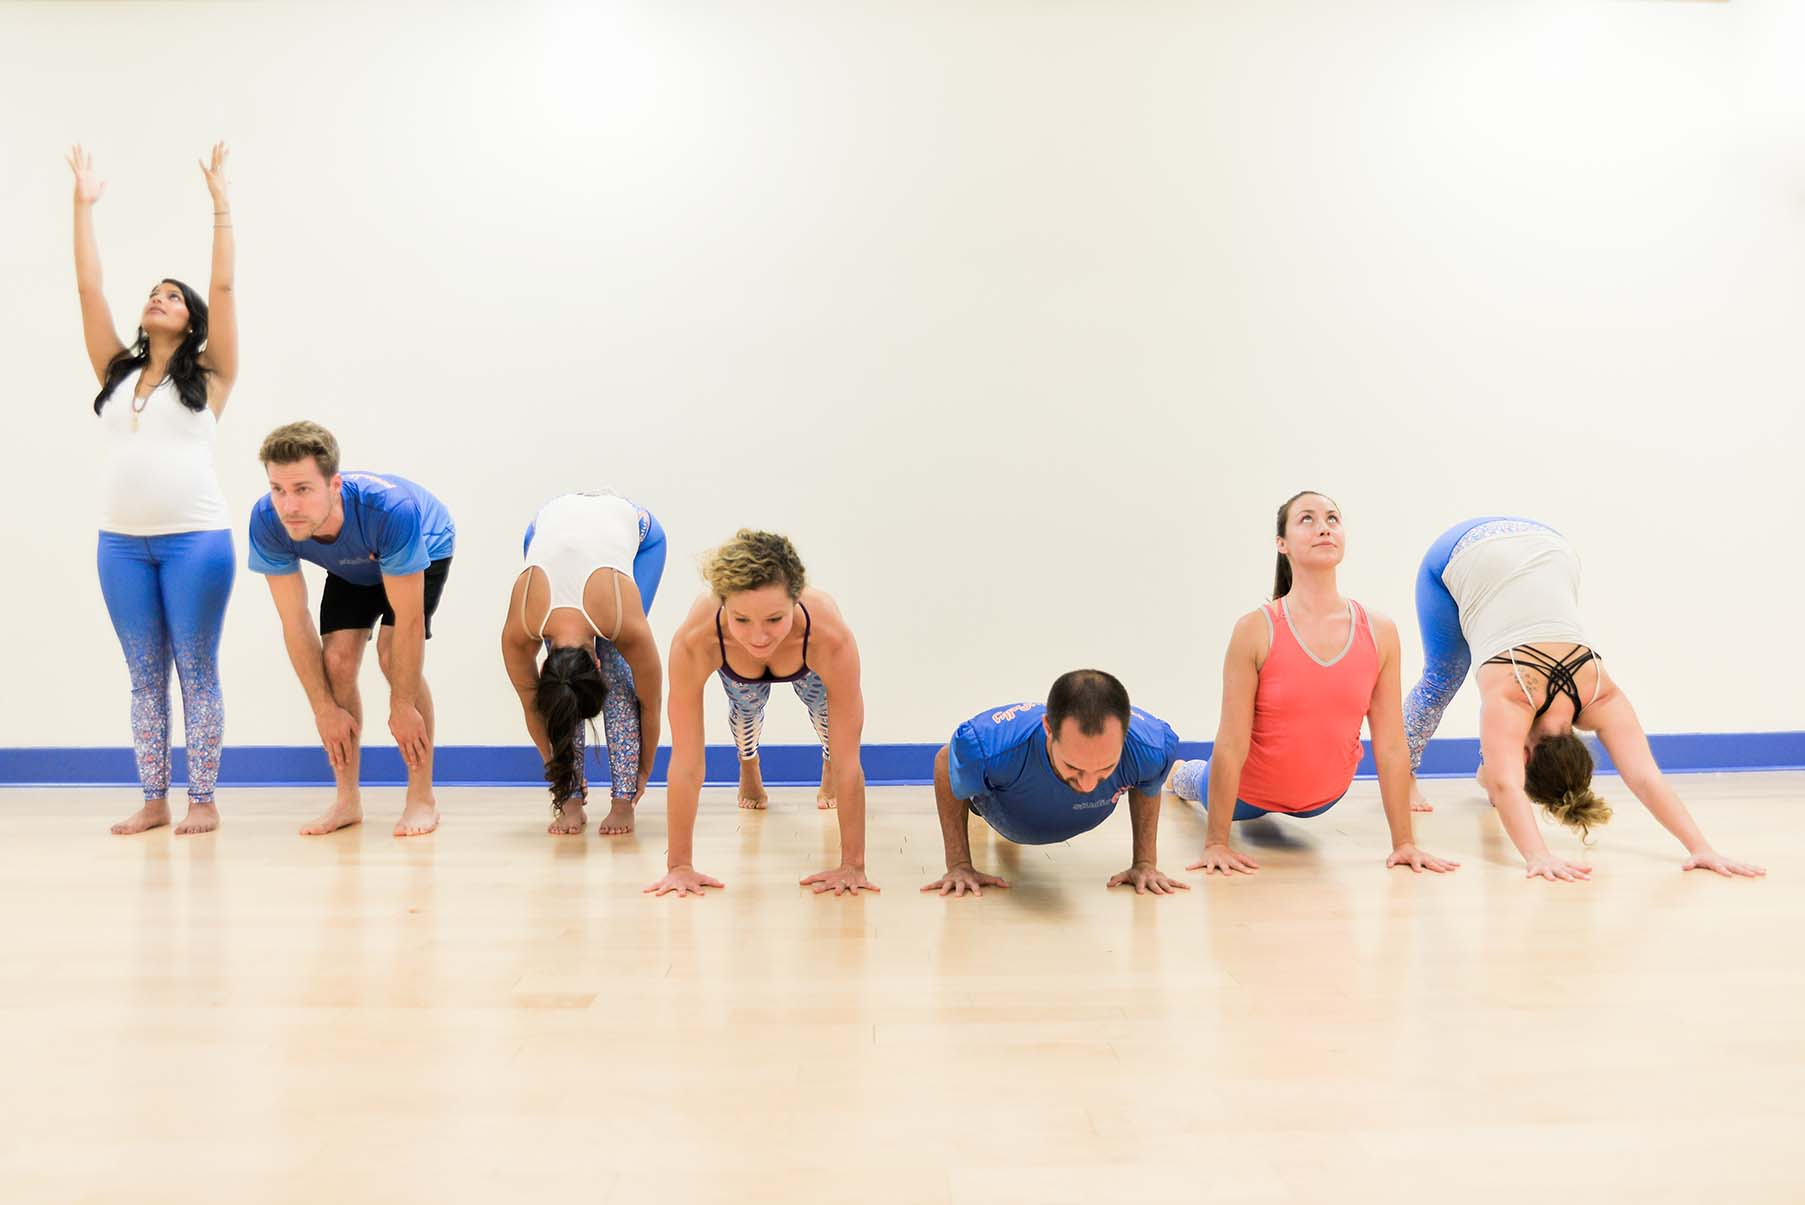 Studio Blue Yoga & Fitness, practice playfully